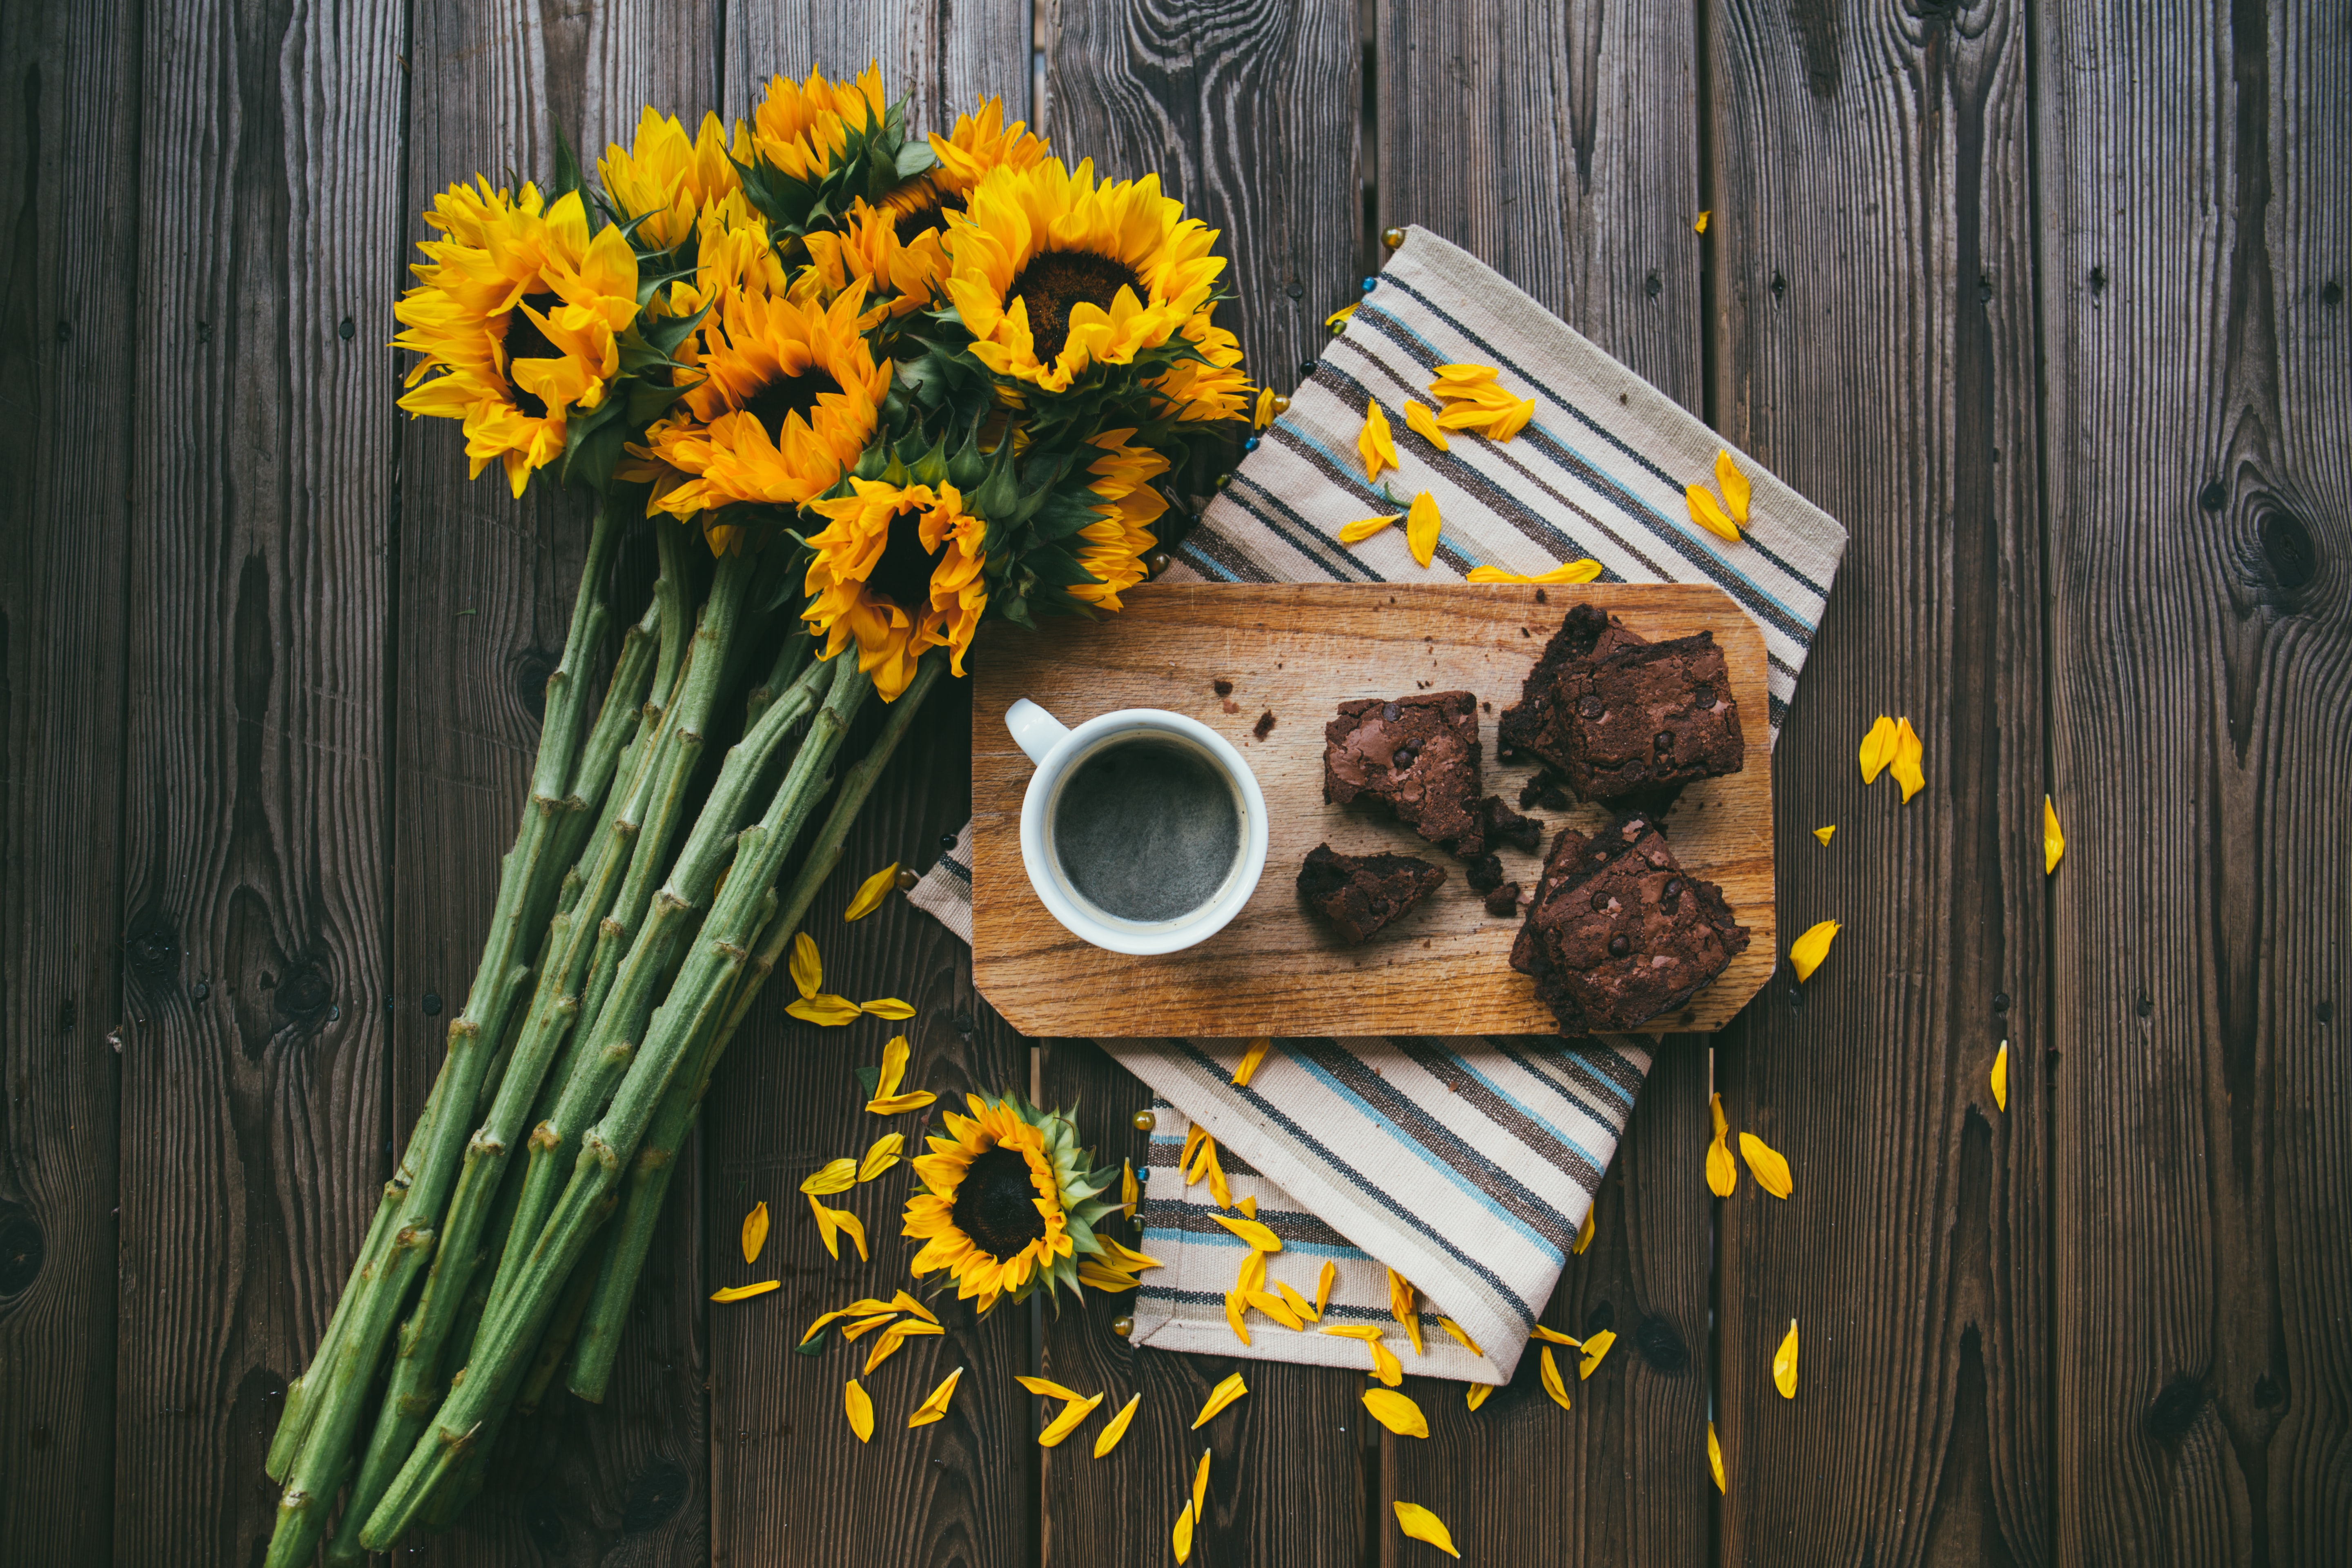 A bouquet of sunflowers, striped placemat, wooden board, cup of coffee, and brownies on a table